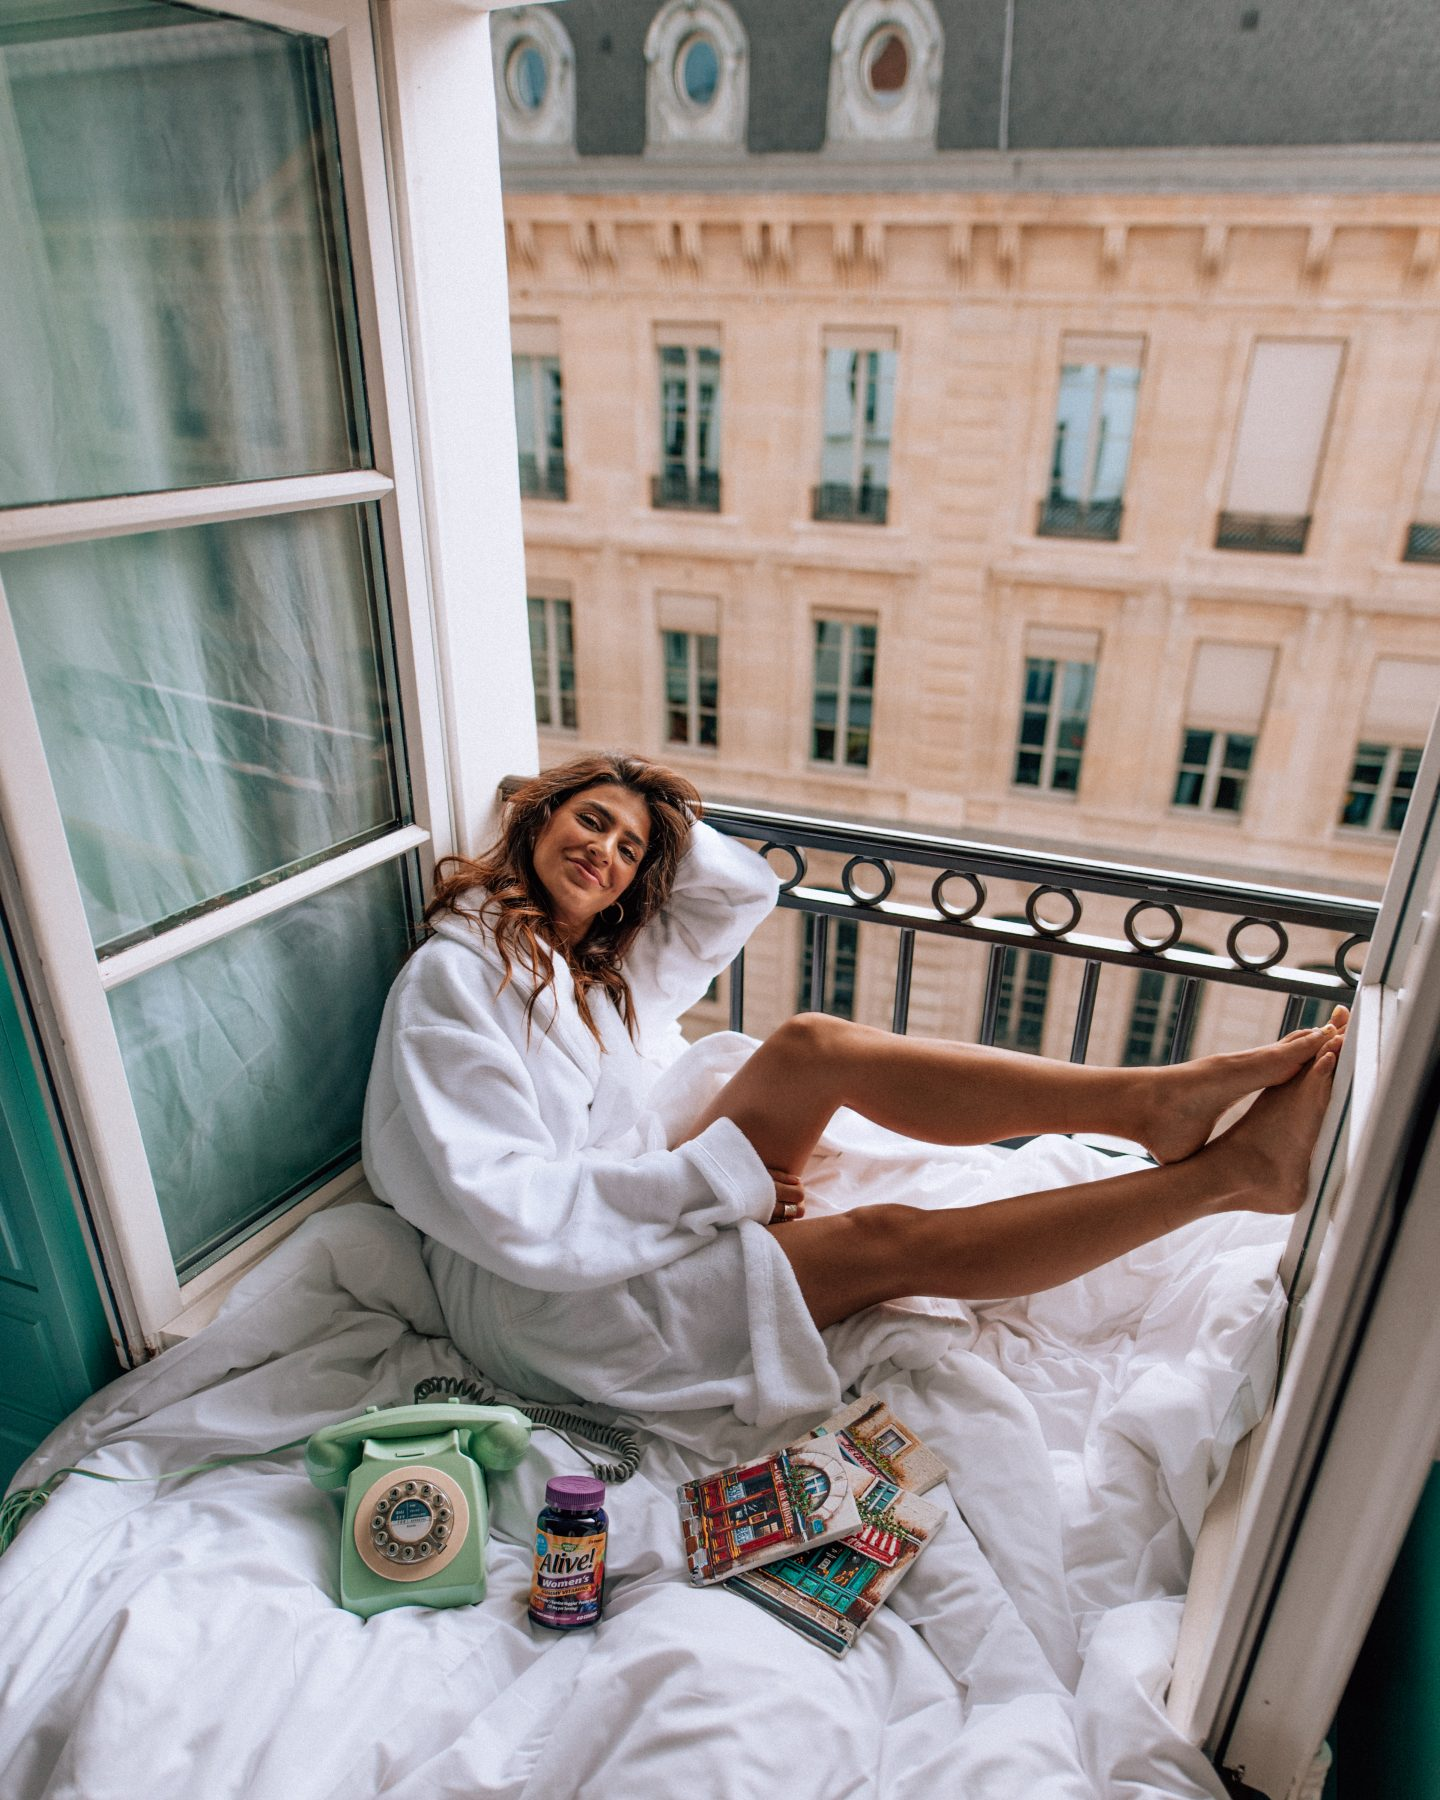 Lisa Homsy on a hotel balcony in Paris France